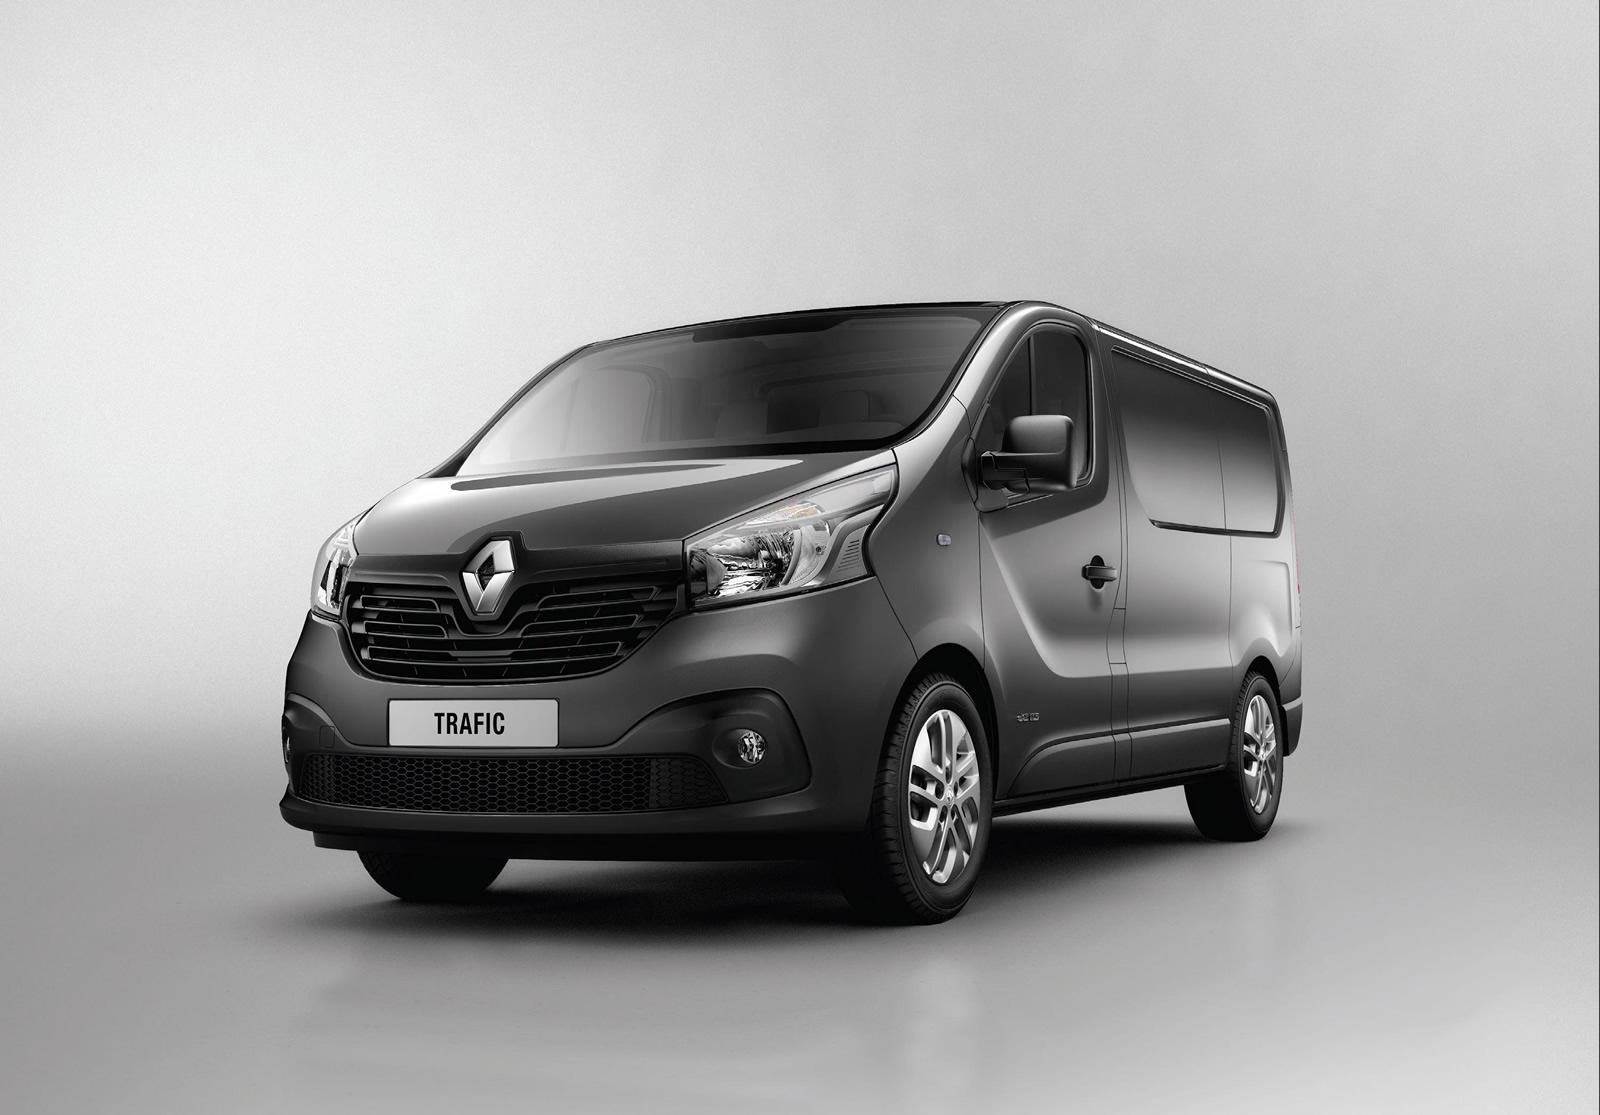 2014 renault trafic. Black Bedroom Furniture Sets. Home Design Ideas